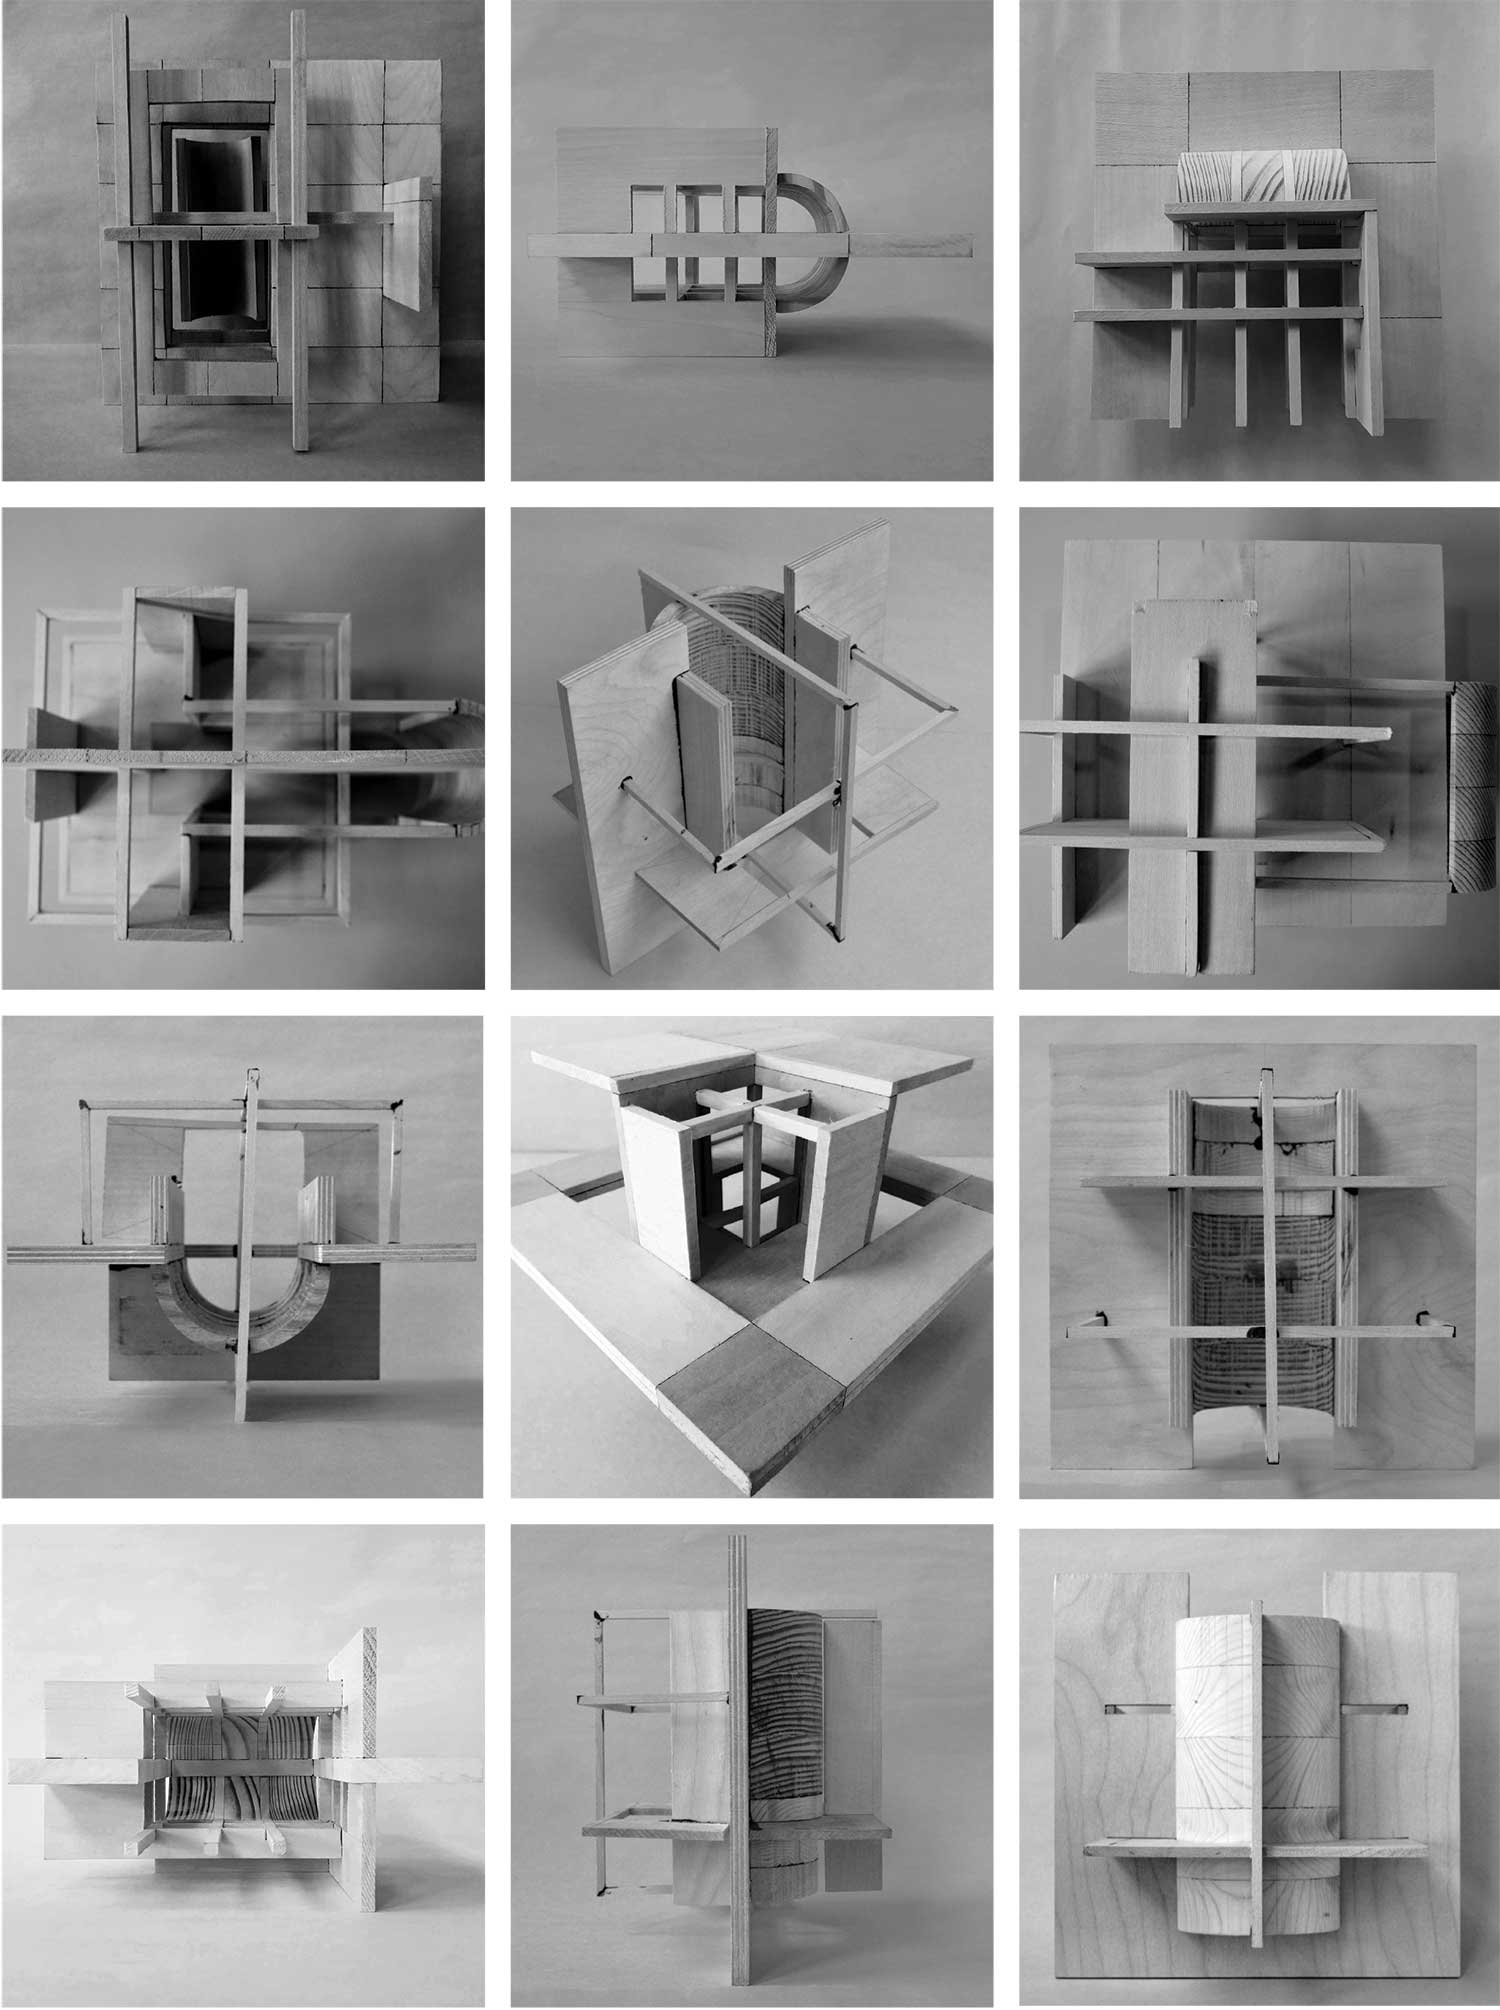 12 black and white images (3x4) of architecture models by students in studio 1A